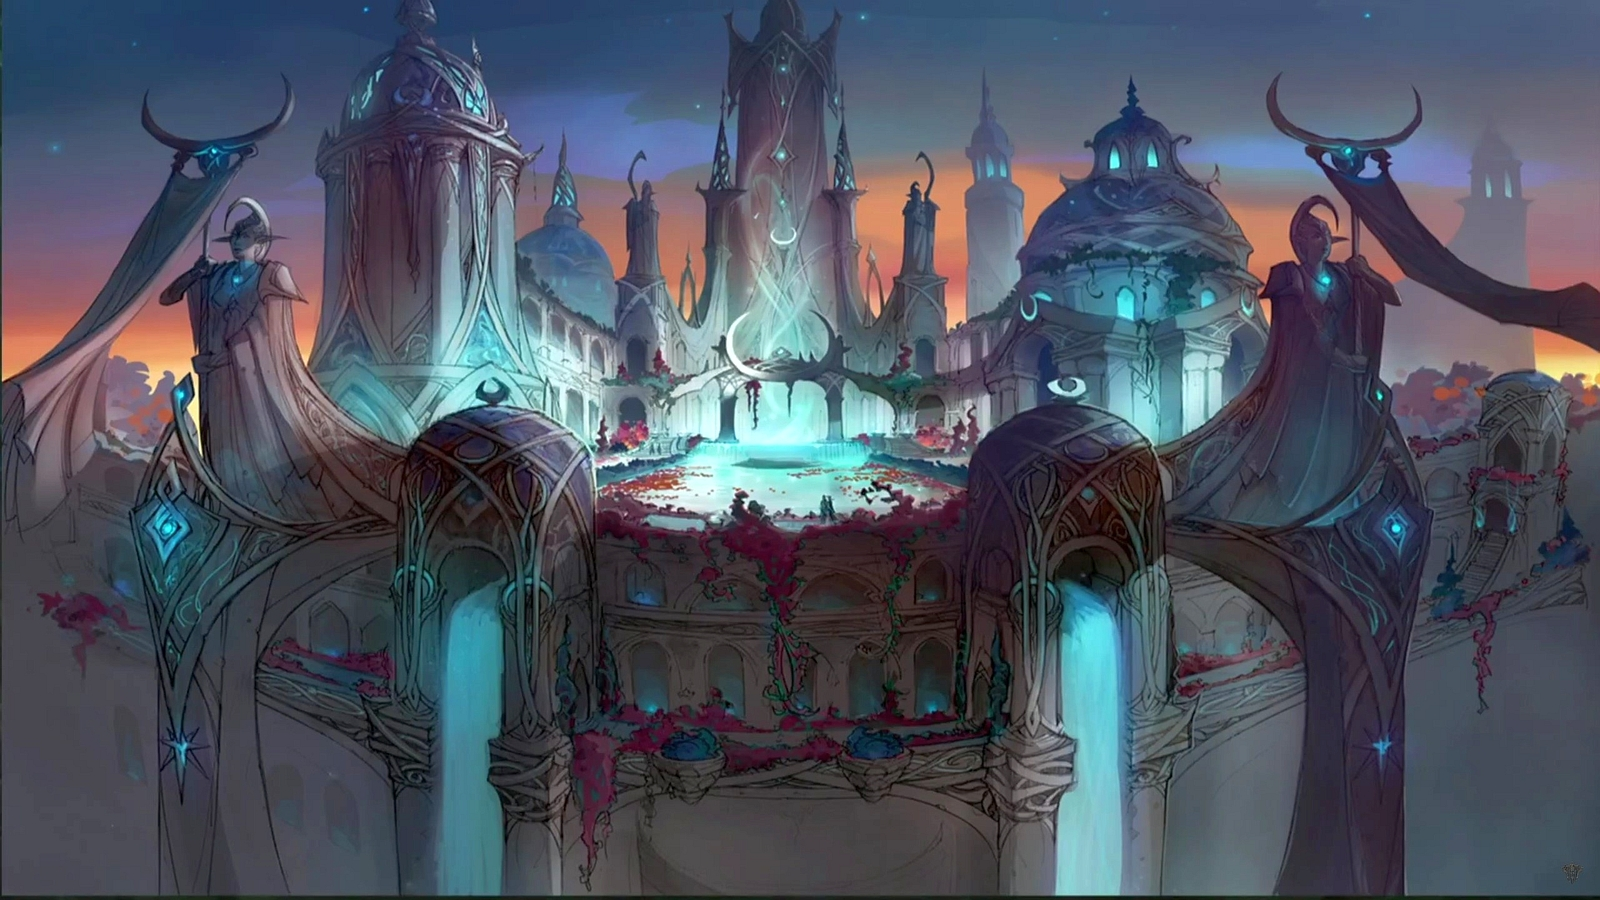 WoW Palast Suramar Nighthold